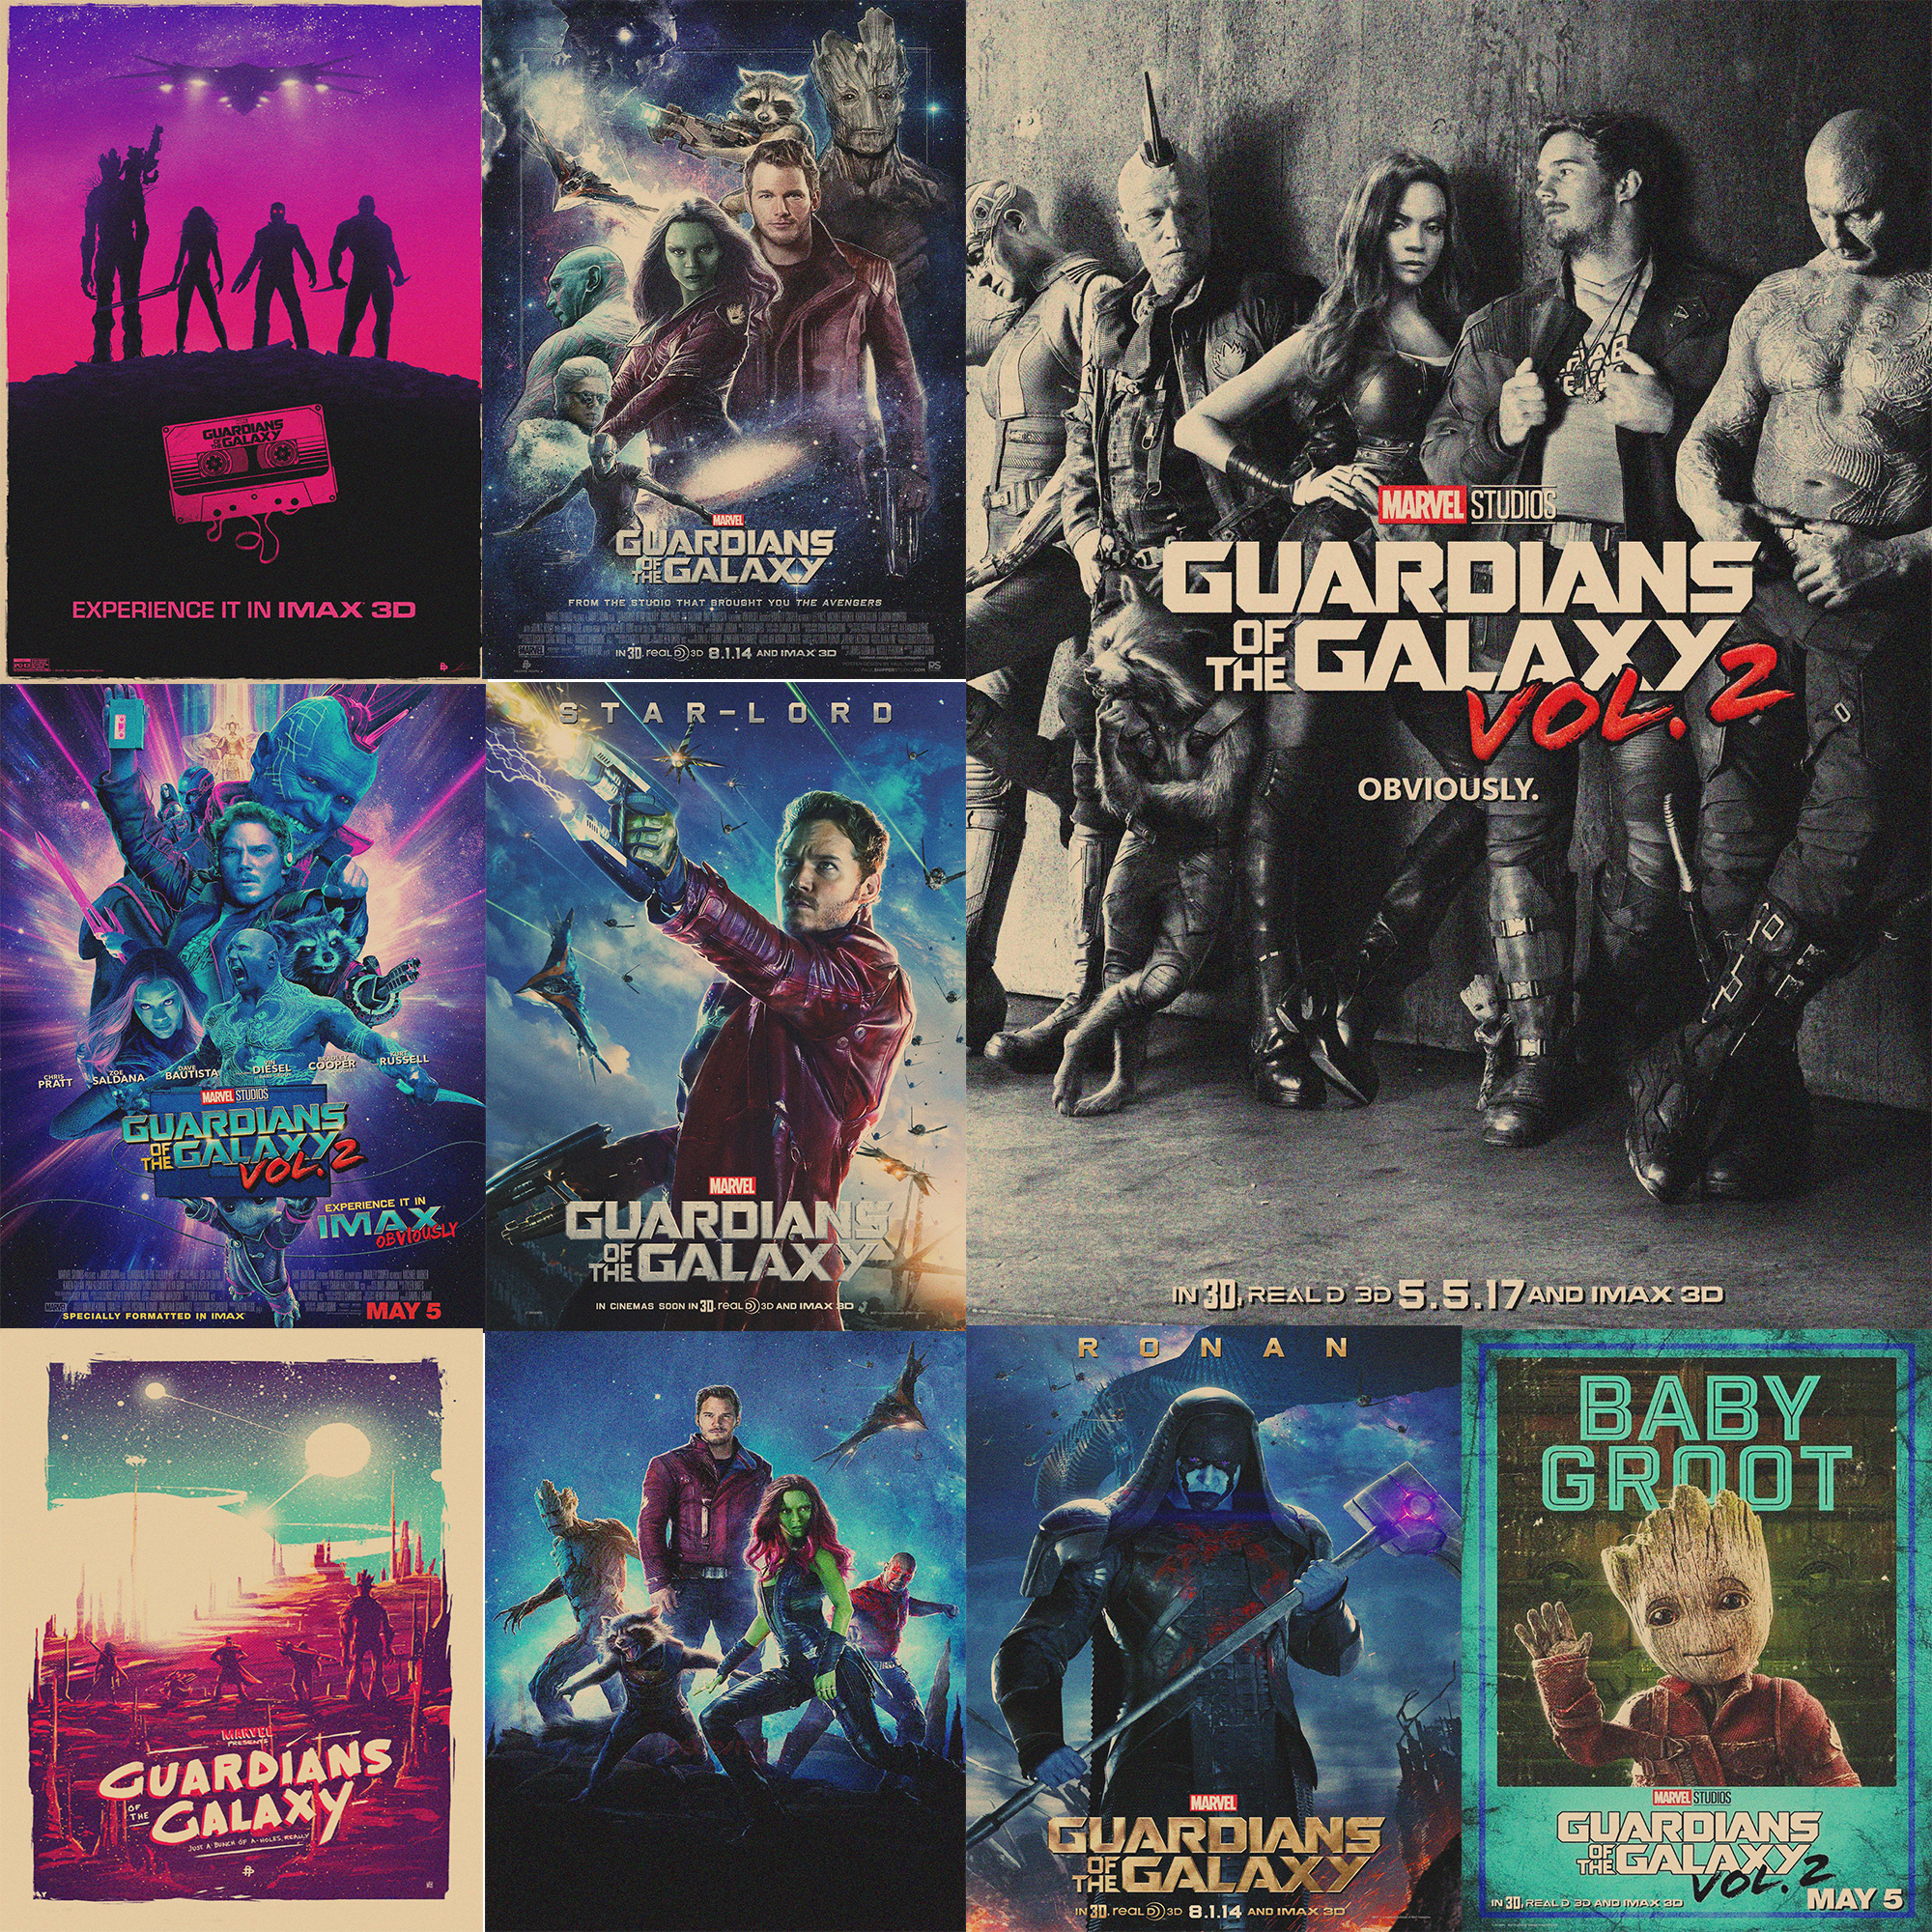 Guardians of the Galaxy Vol. 2 Posters Brown Kraft Paper Prints Wall Stickers Home Decoration Vintage Style MO11